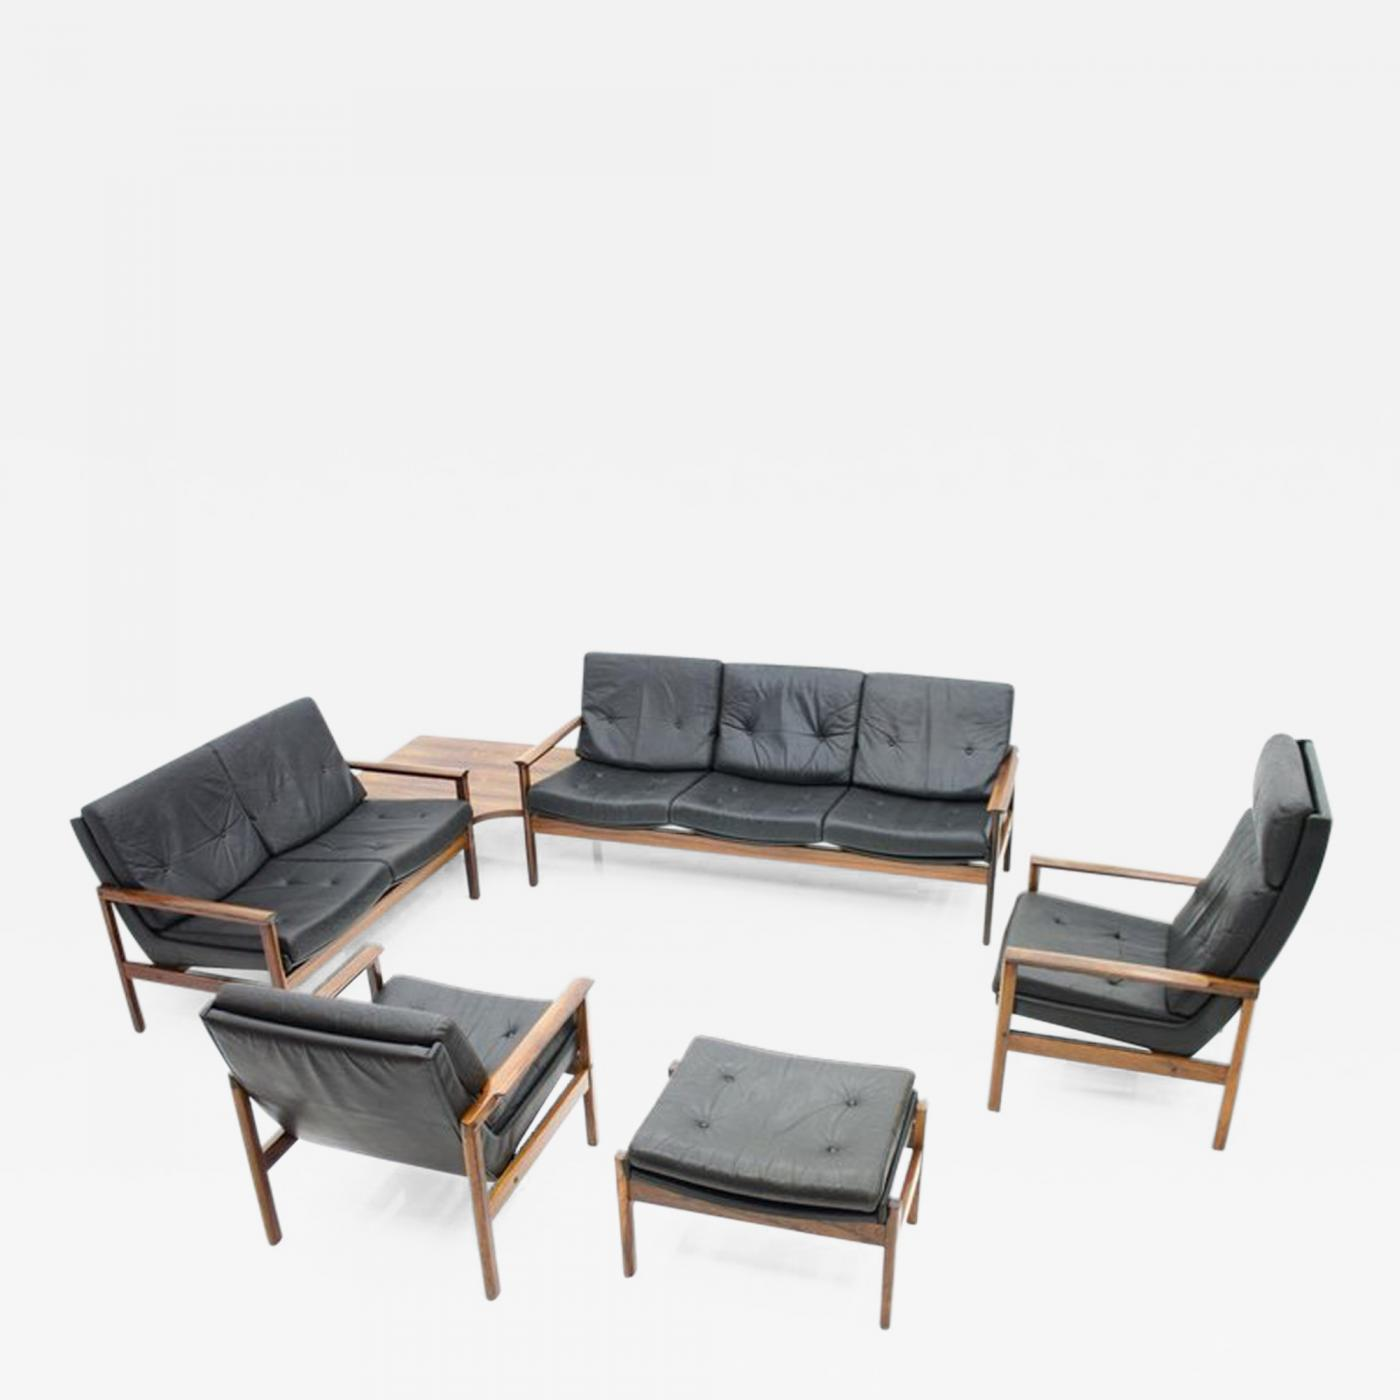 Prime Scandinavian Living Room Set 1970S With 2 Sofas 2 Lounge Chairs And A Stool Inzonedesignstudio Interior Chair Design Inzonedesignstudiocom